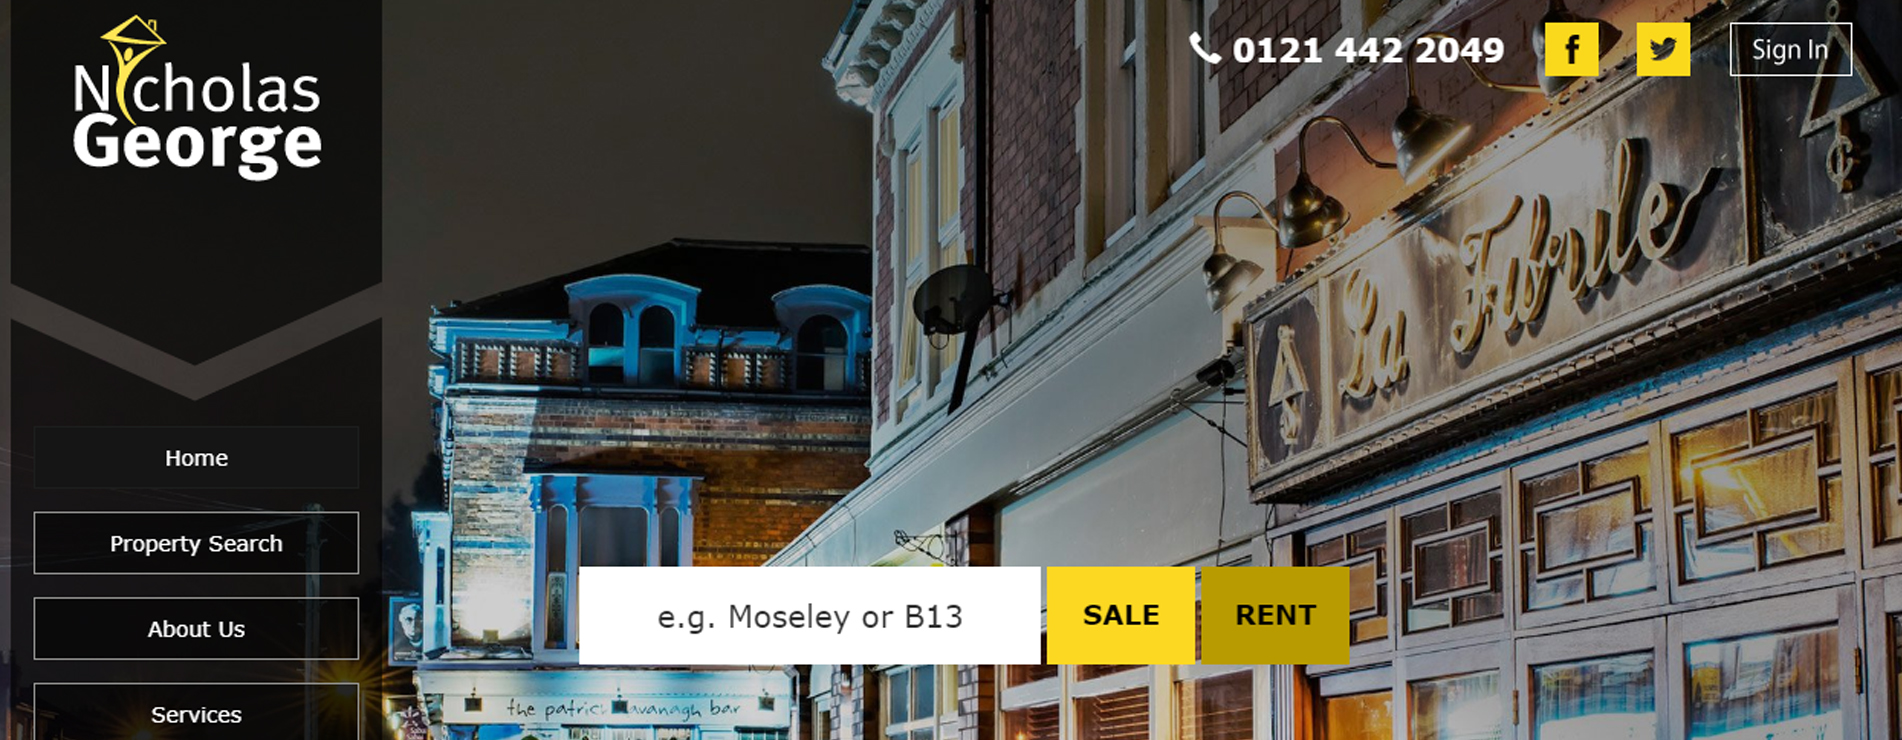 Estate Agents Birmingham